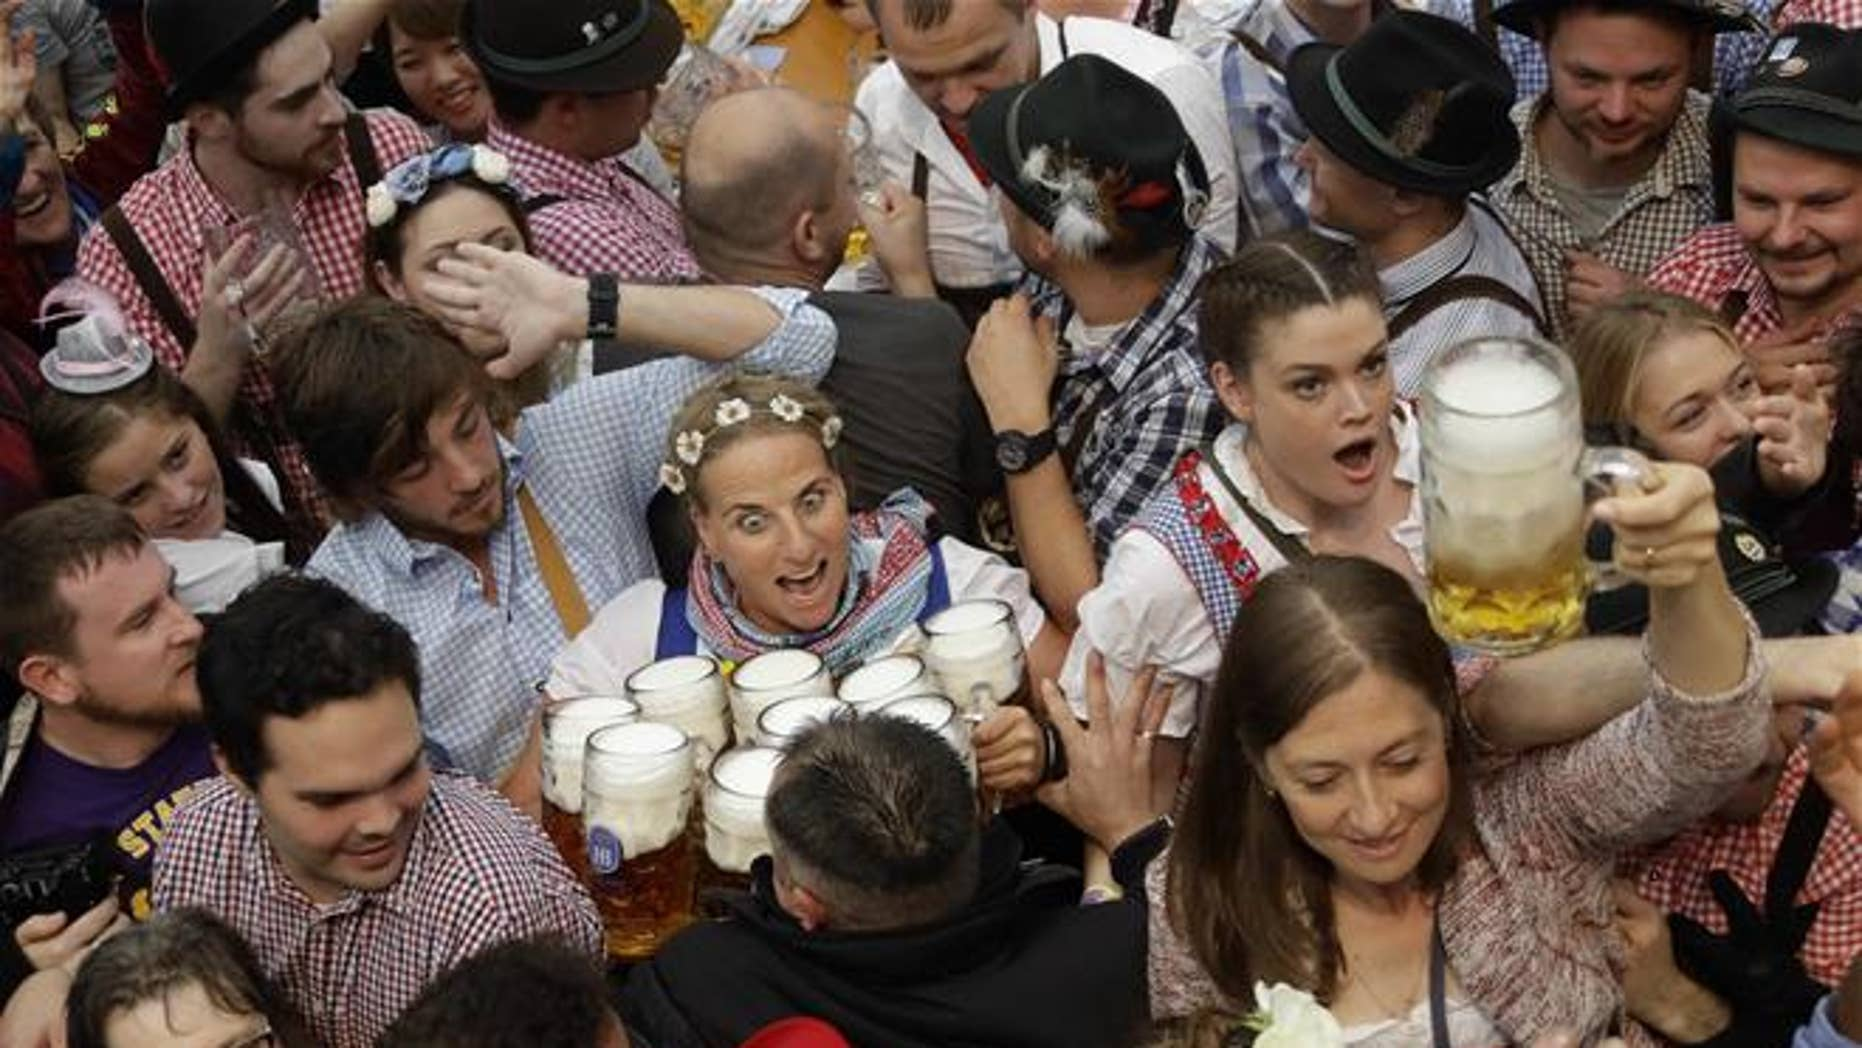 FILE - In this Saturday, Sept. 17, 2016 file photo a waitress is surrounded by visitors during the opening ceremony of the 183rd Oktoberfest beer festival in Munich, southern Germany.